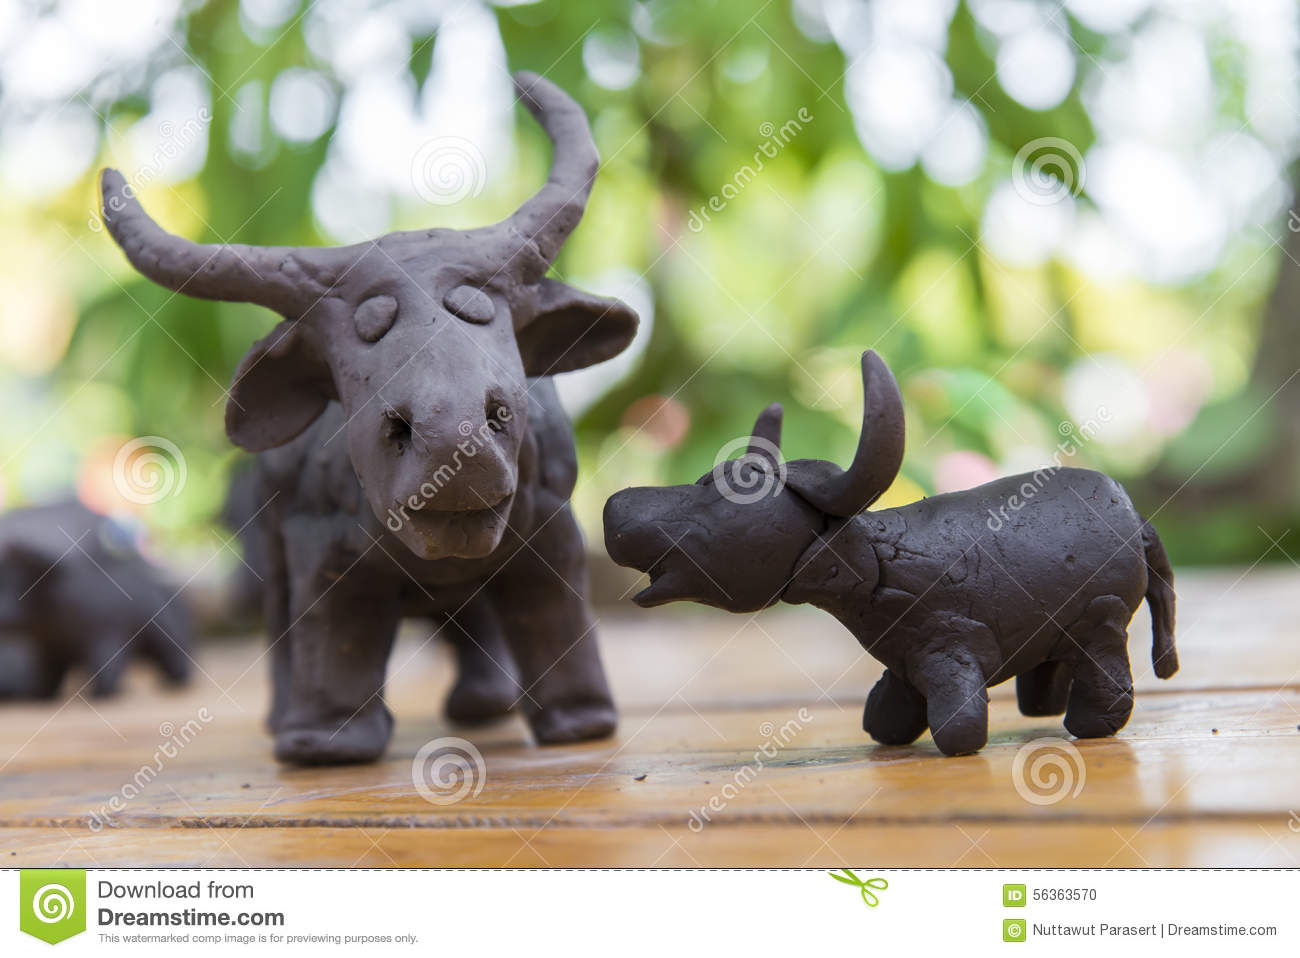 father and son buffalo clay sculpture on wooden background in outdoor